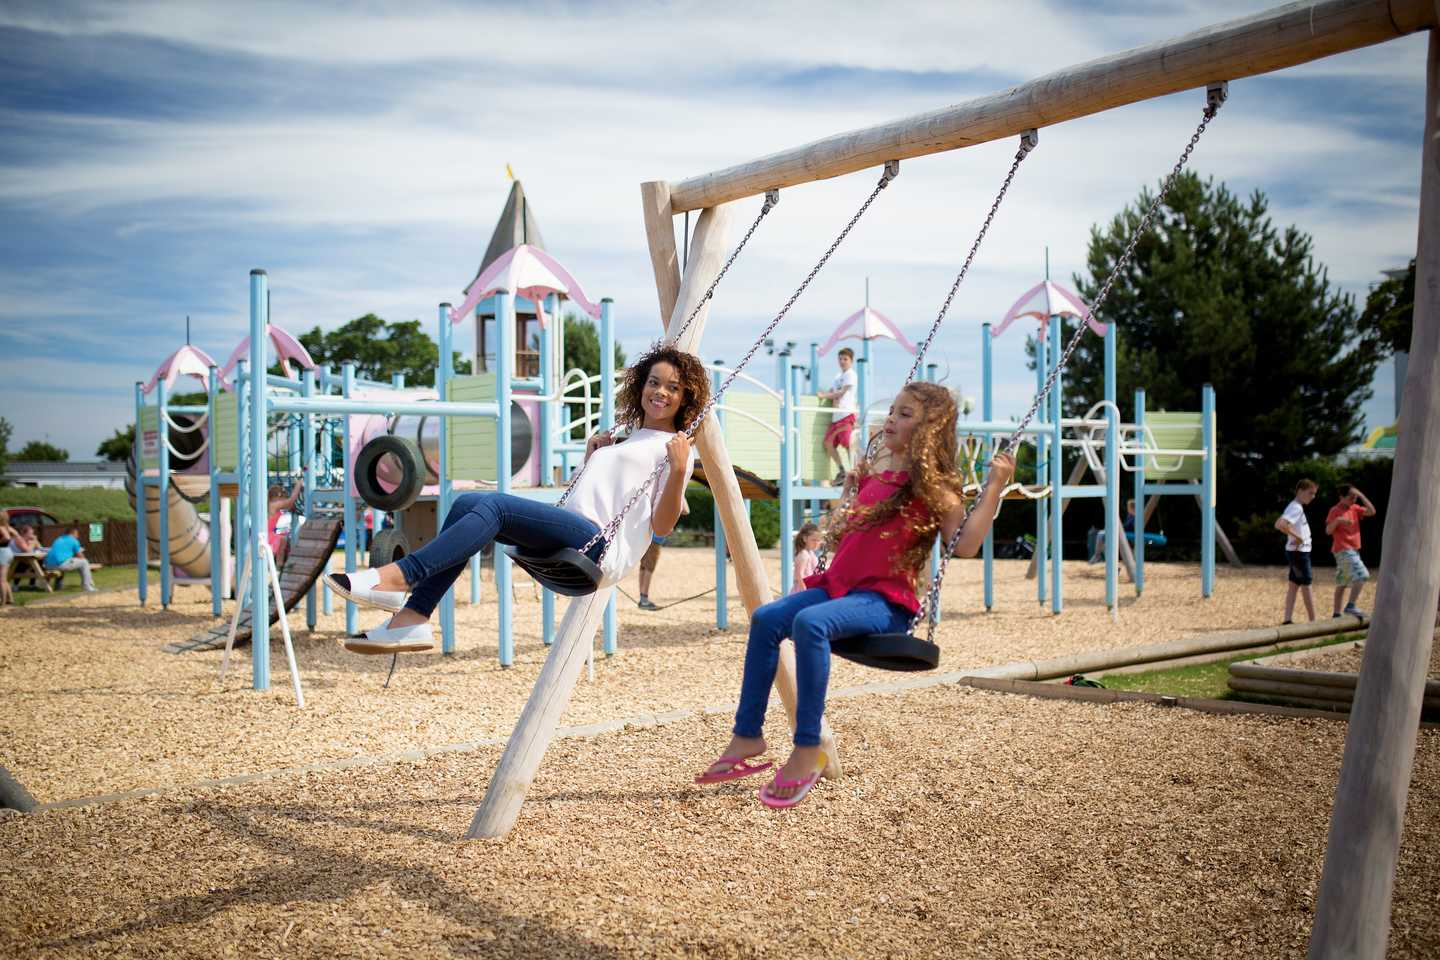 Guests swinging in the outdoor play area